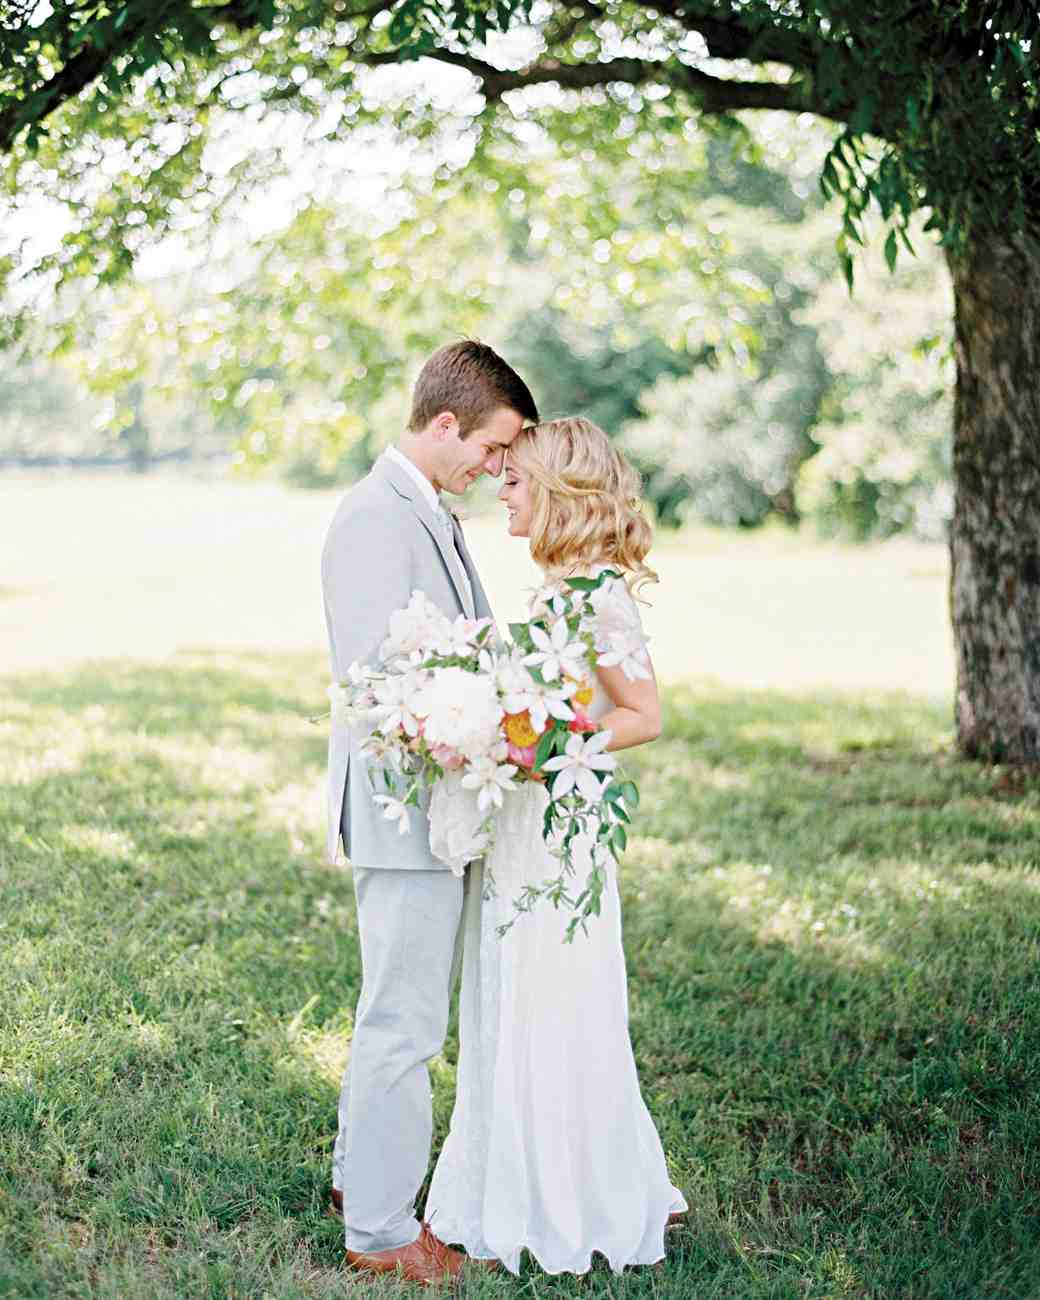 A Pastel Wedding At A Texas Orchard